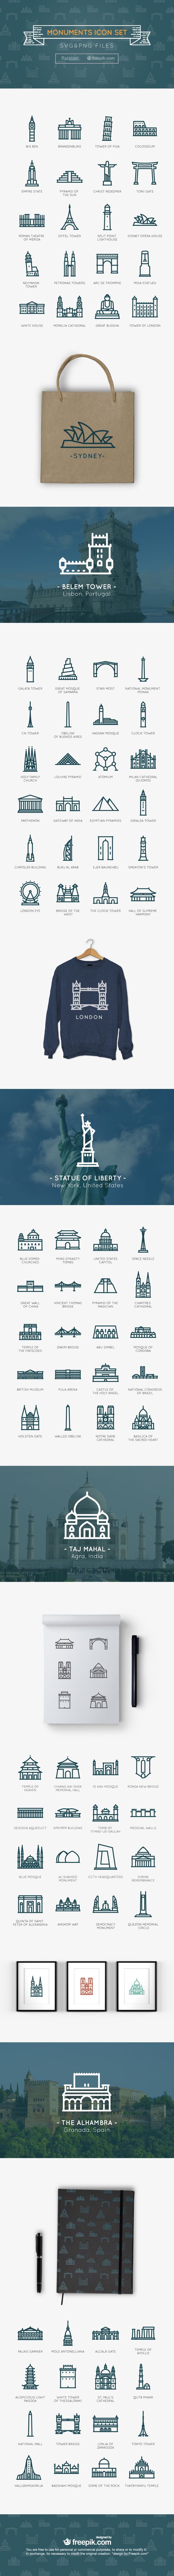 Free world monuments icons pack | Freepik Blog by Juanjo Fernández